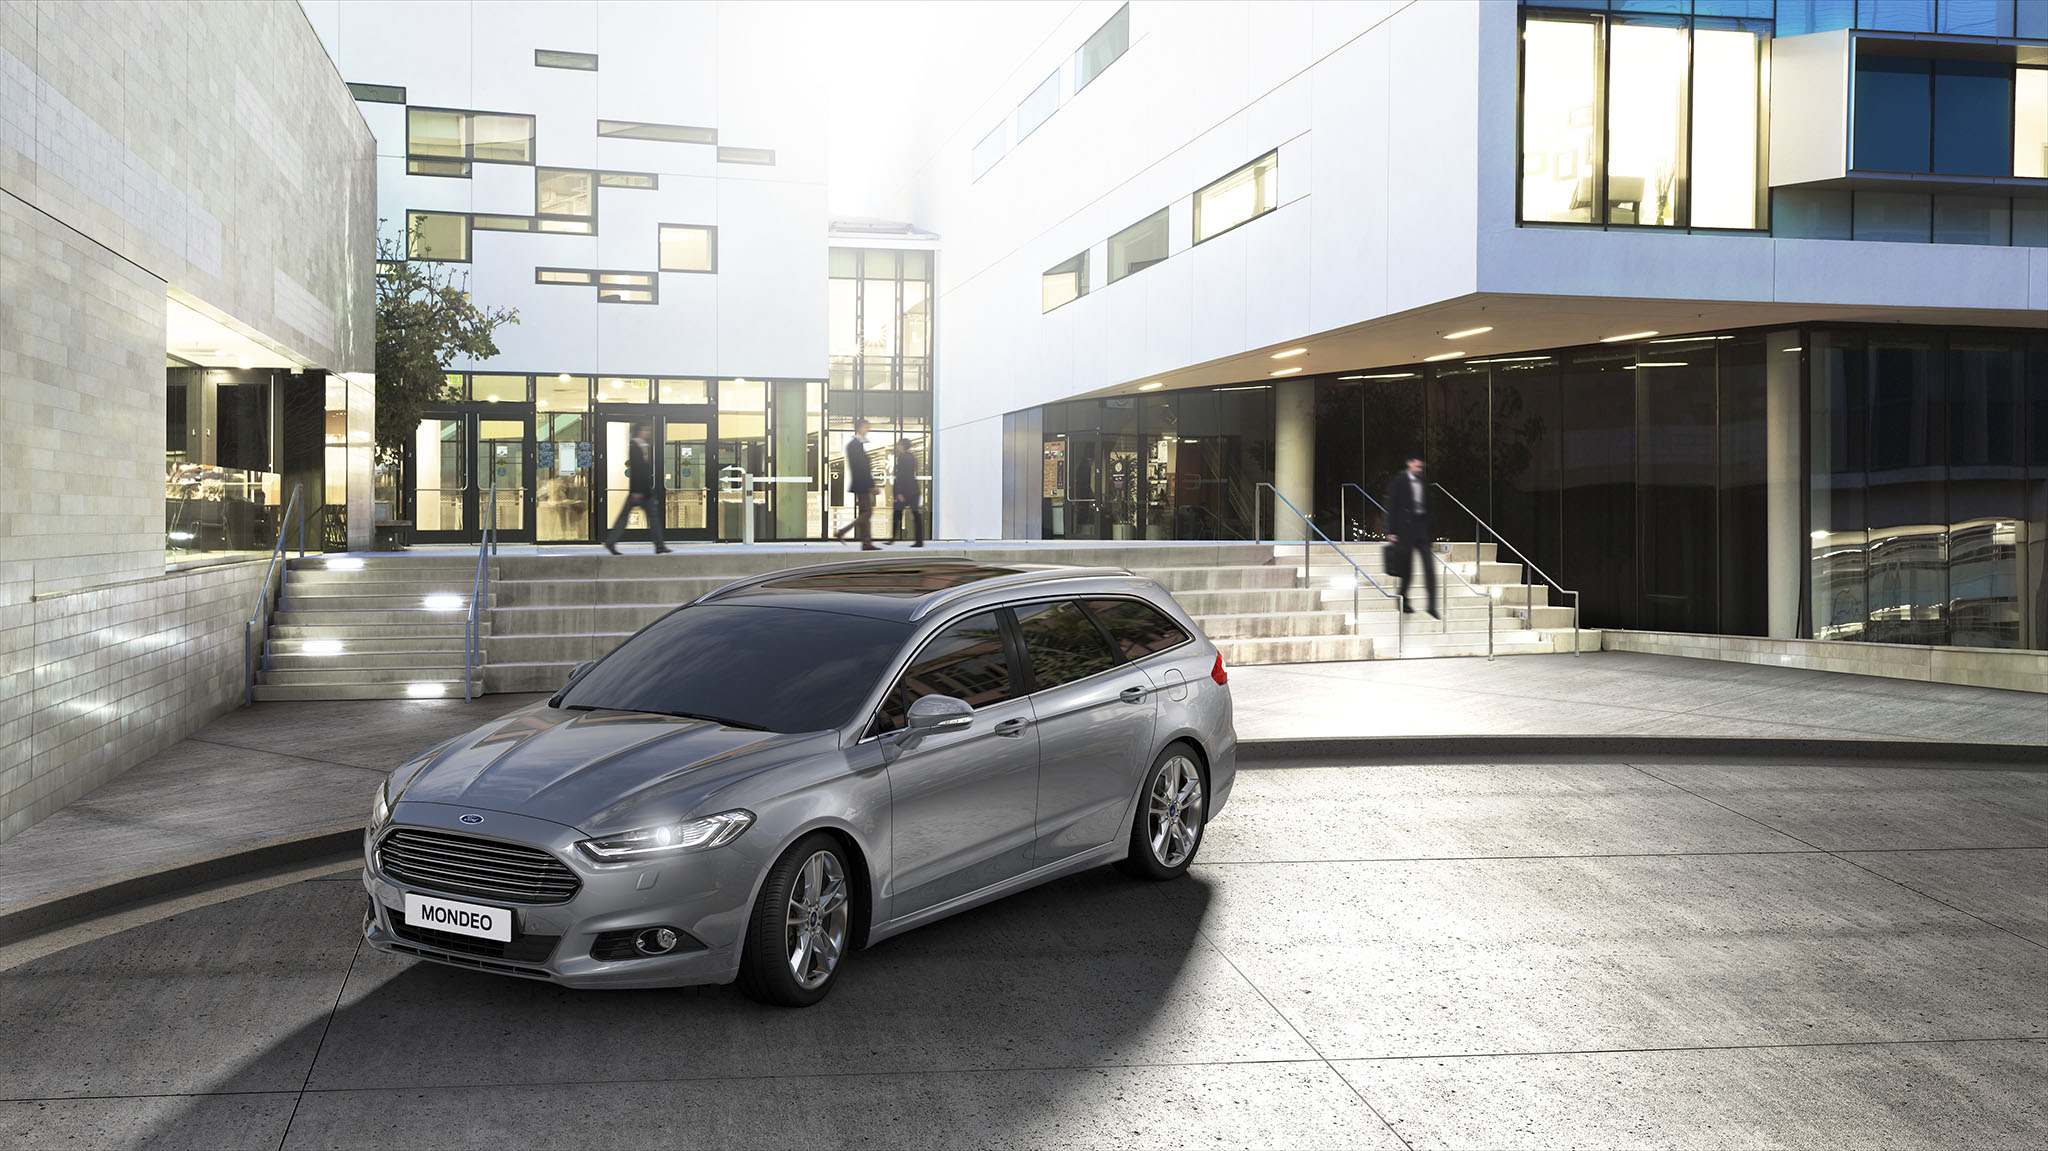 FordMondeo 03